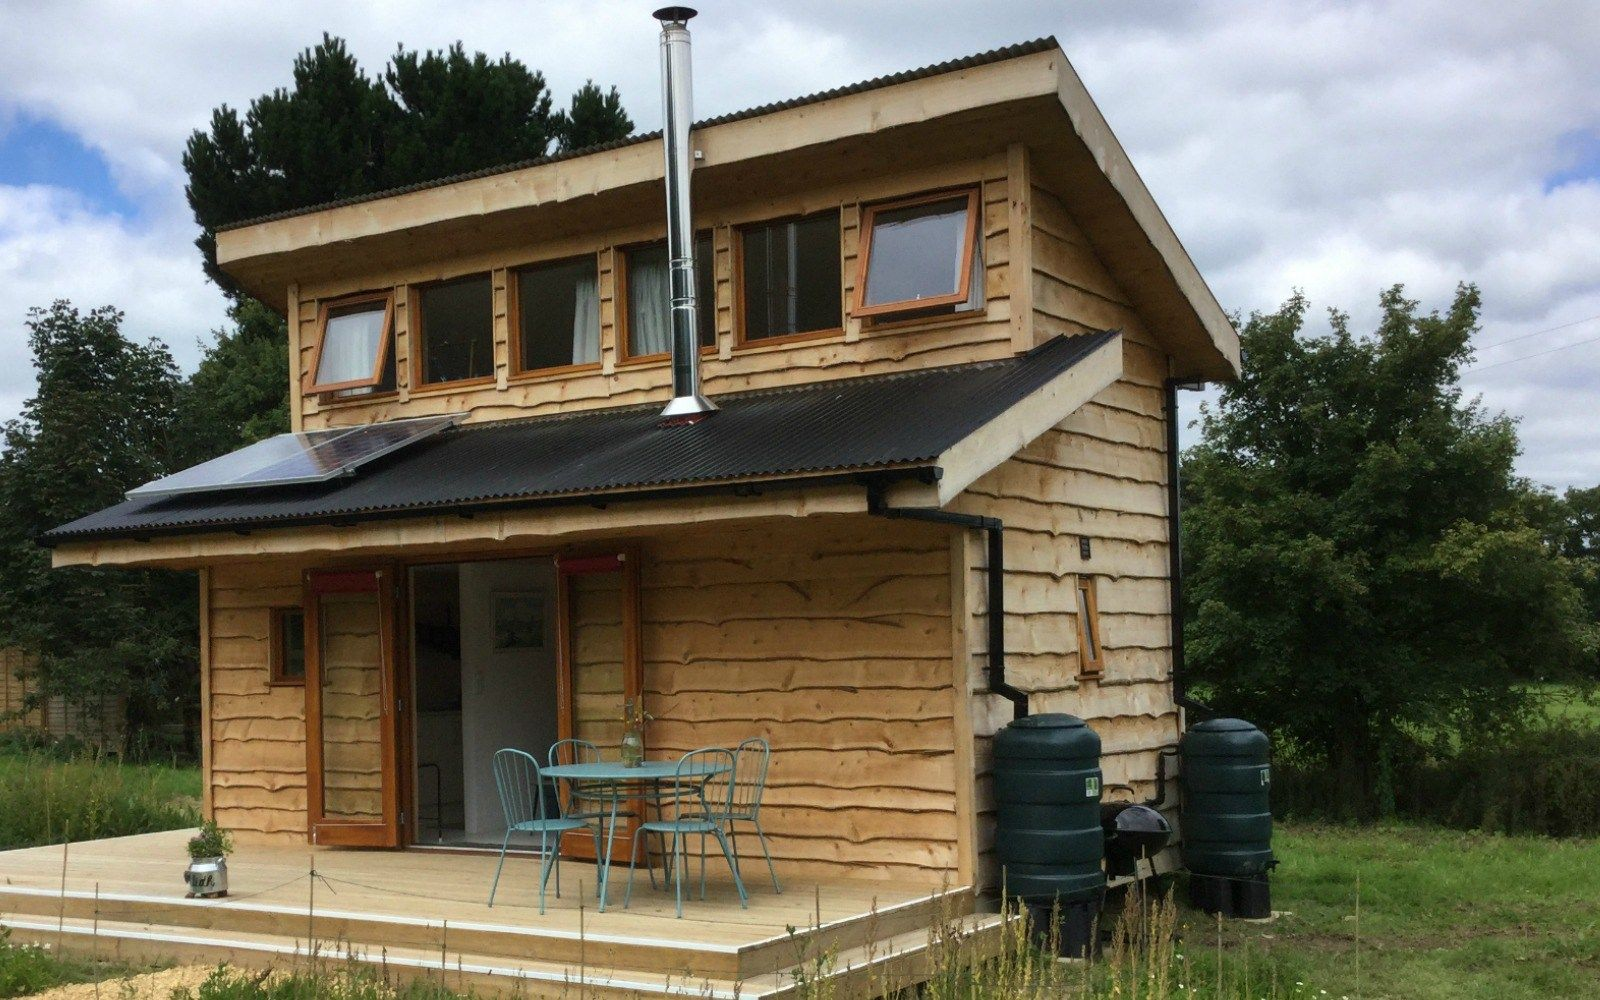 The Eilidh Cabin Off Grid Tiny House In The Isle Of Wight Off Grid Tiny House Tiny House Cabin Small Tiny House